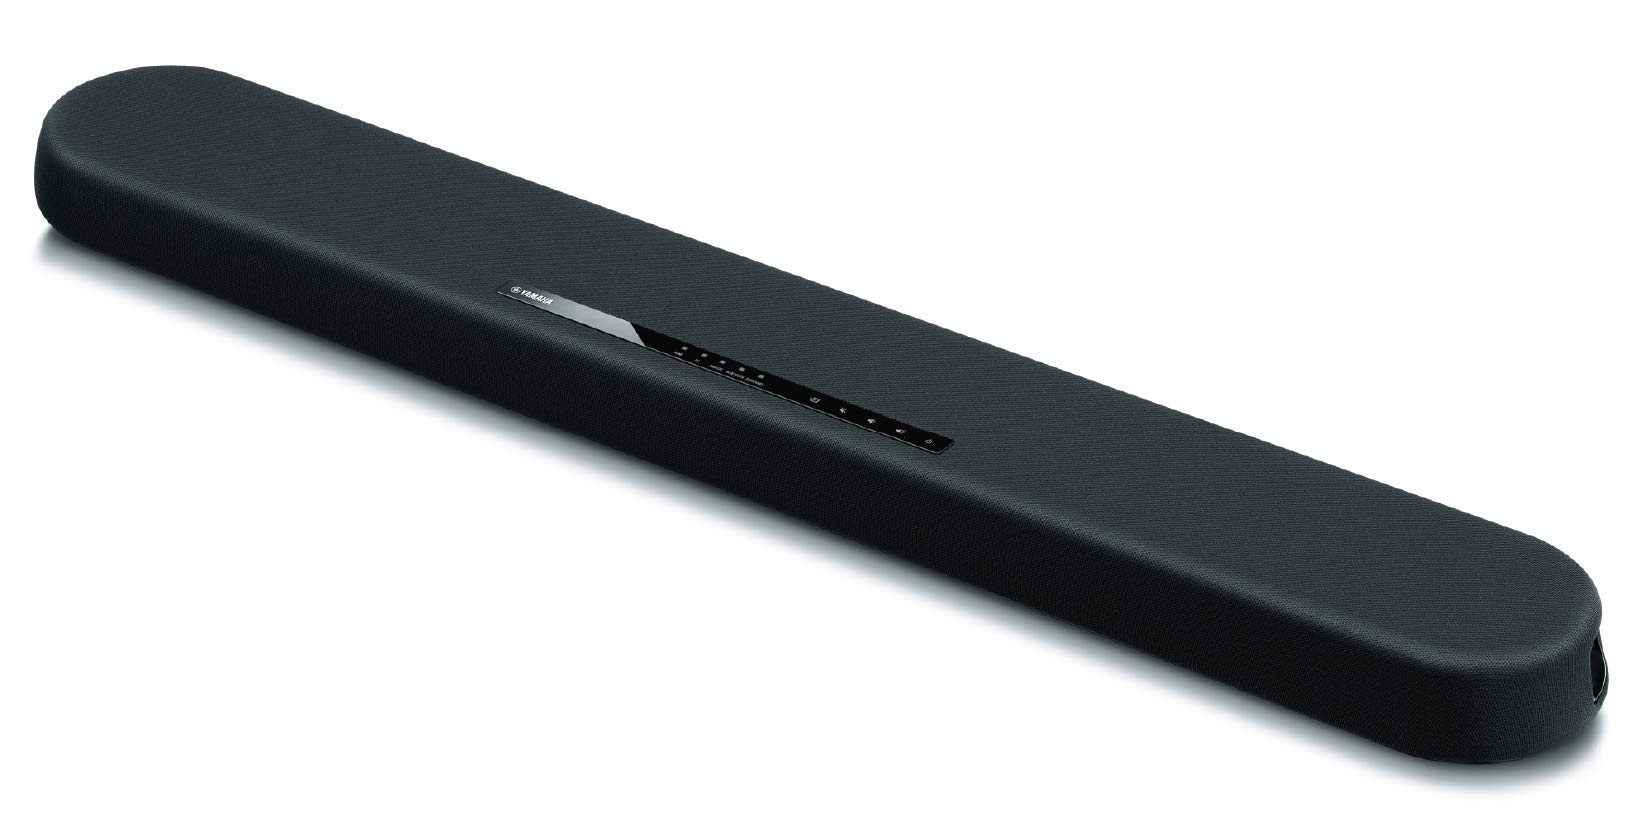 Yamaha ATS1080-R Factory Refurbished Sound Bar with Built-in Subwoofers and Bluetooth